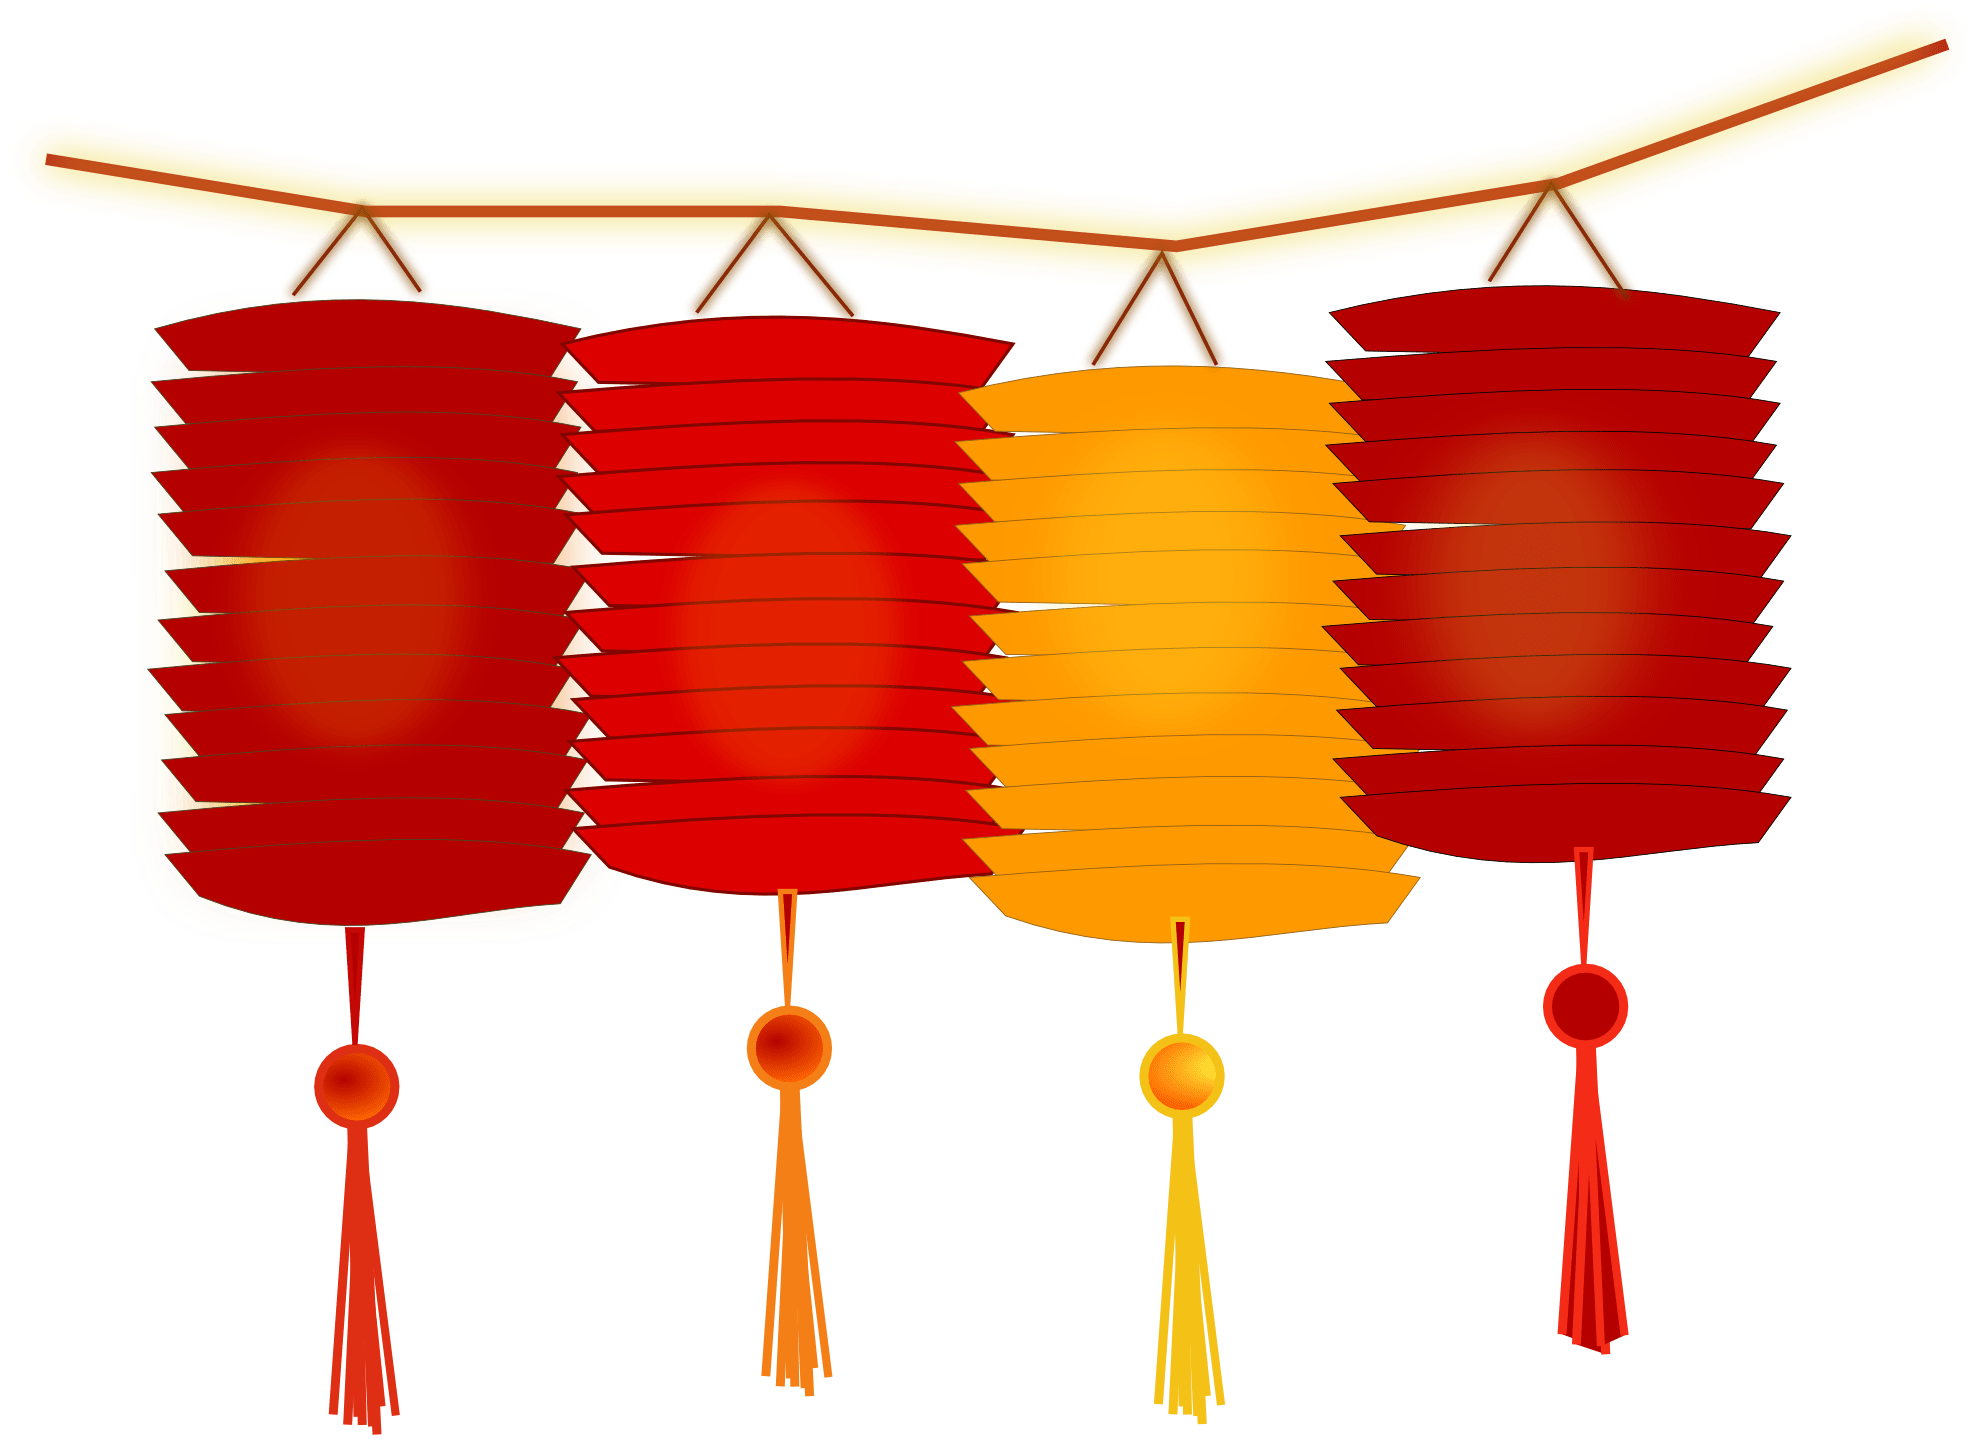 Lanterns for new year. Firecracker clipart firecracker chinese